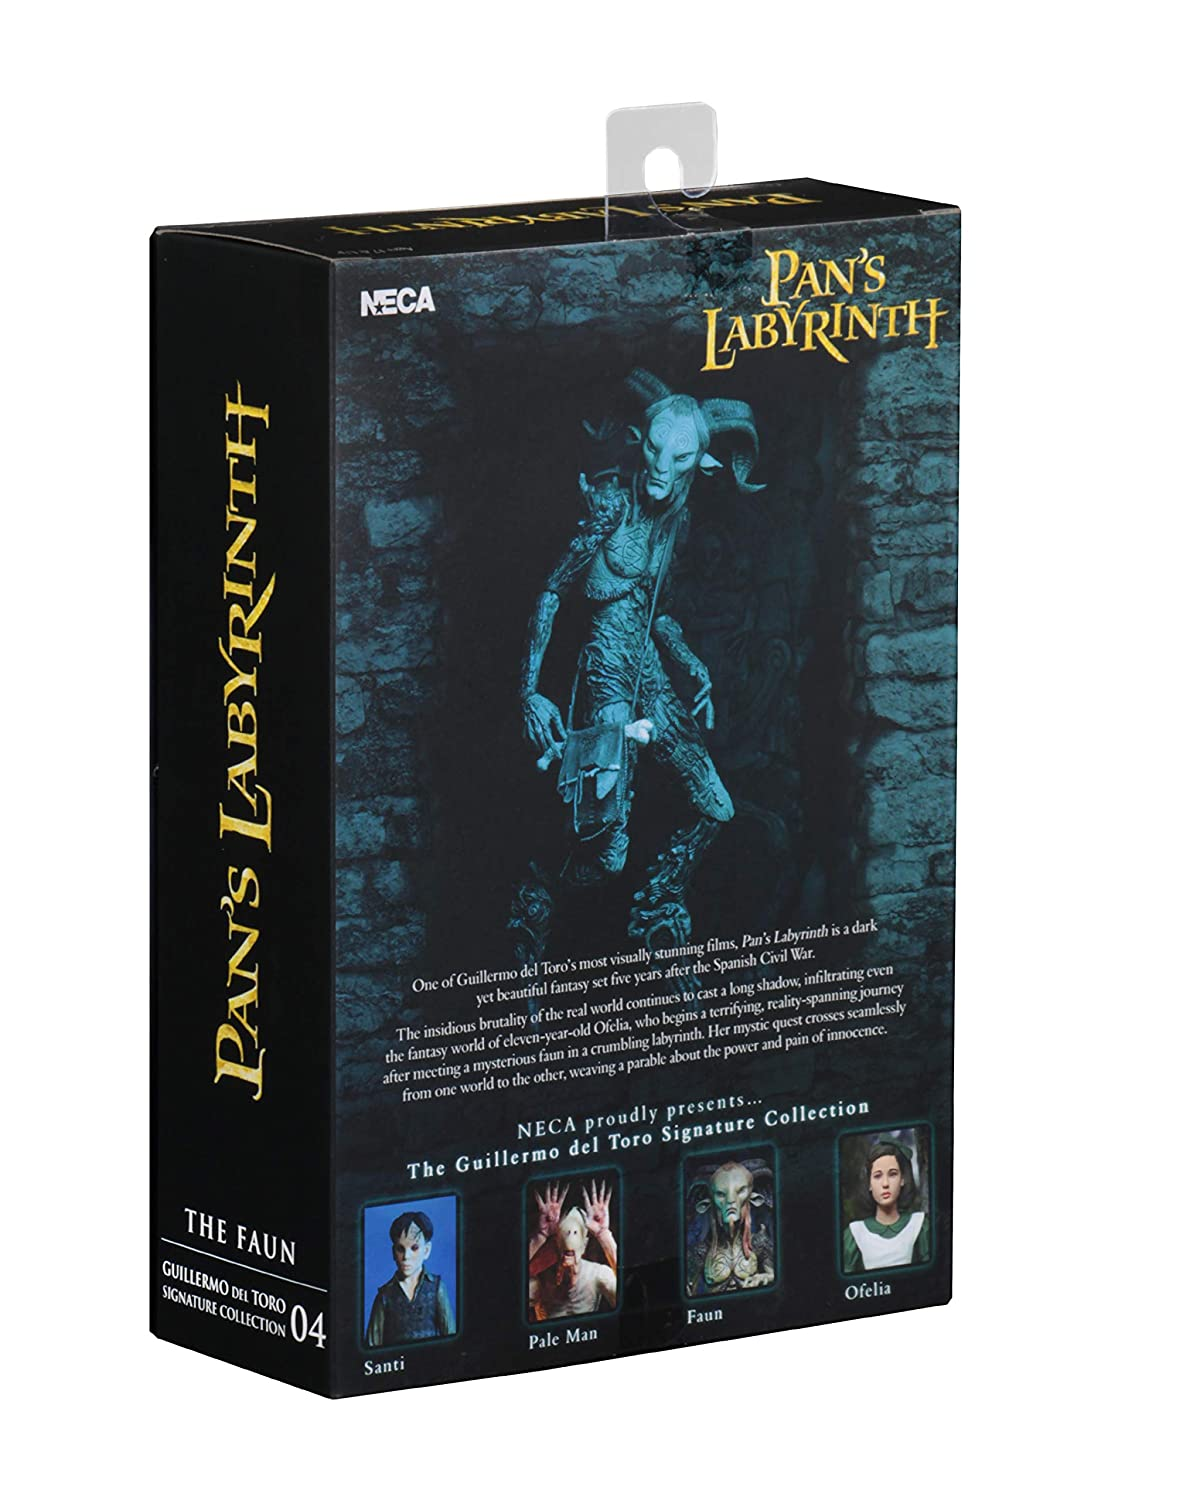 Pans Labyrinth Faun 7 Scale Action Figure NECA Guillermo Del Toro Signature Collection